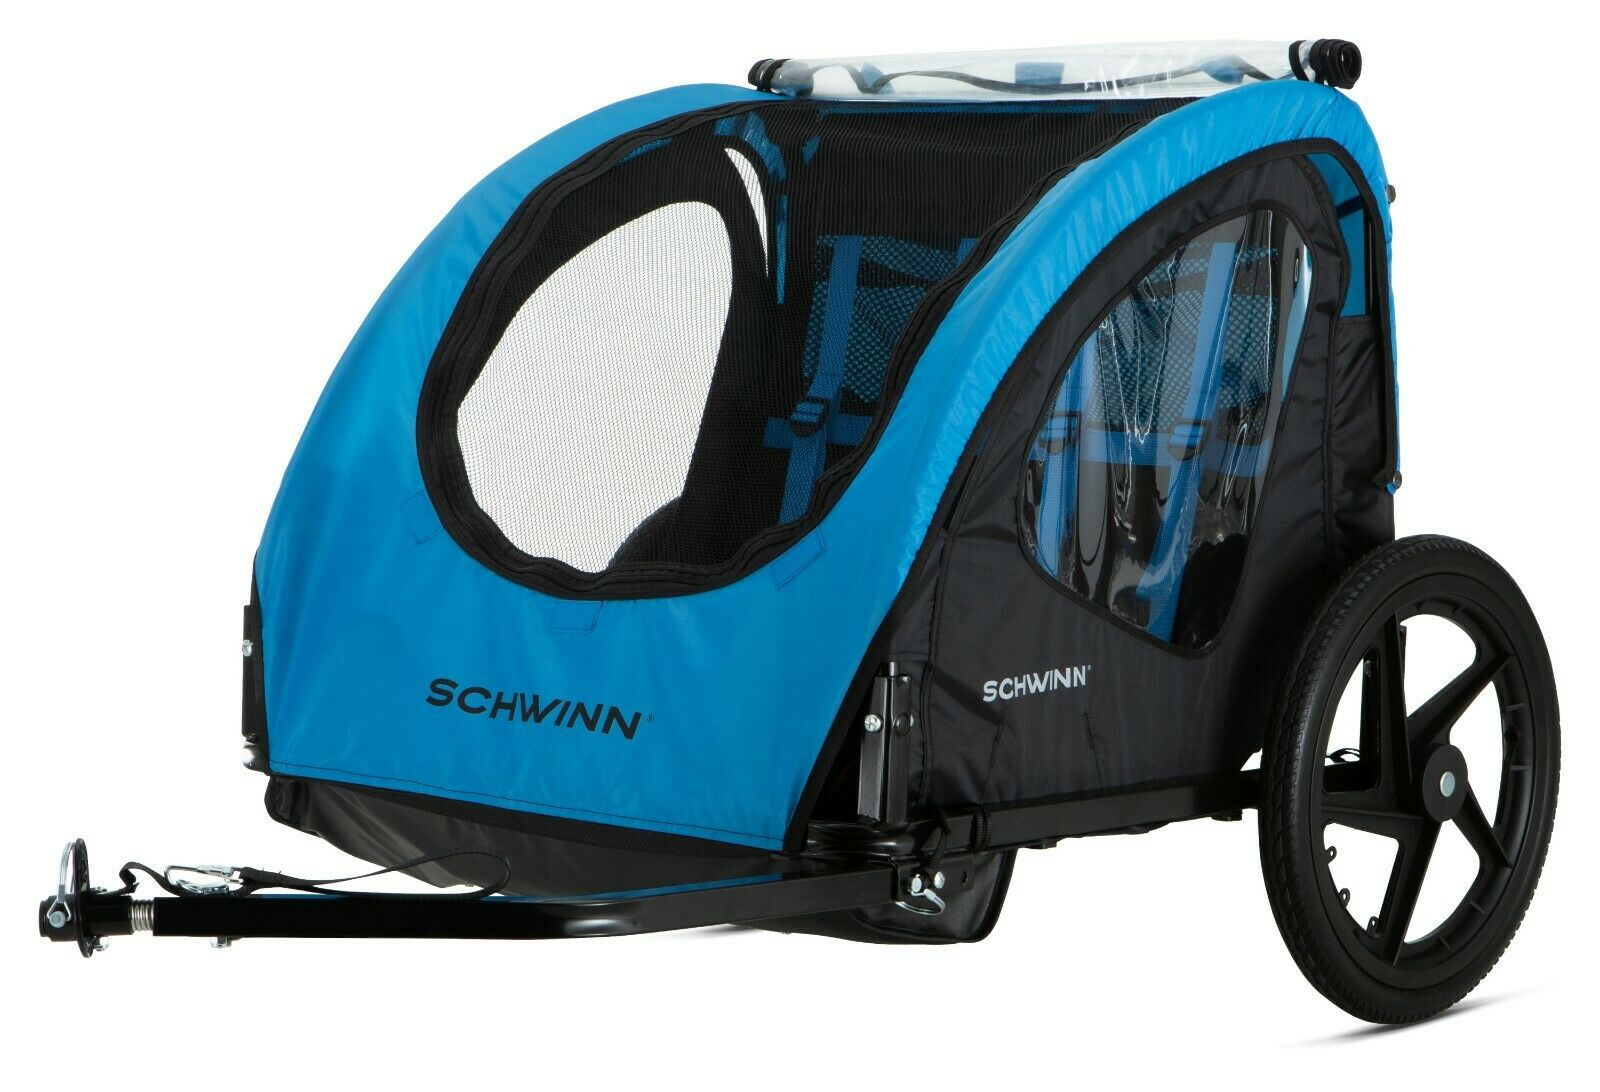 NEW Schwinn Shuttle Foldable Bike Trailer 2 Passengers Blue